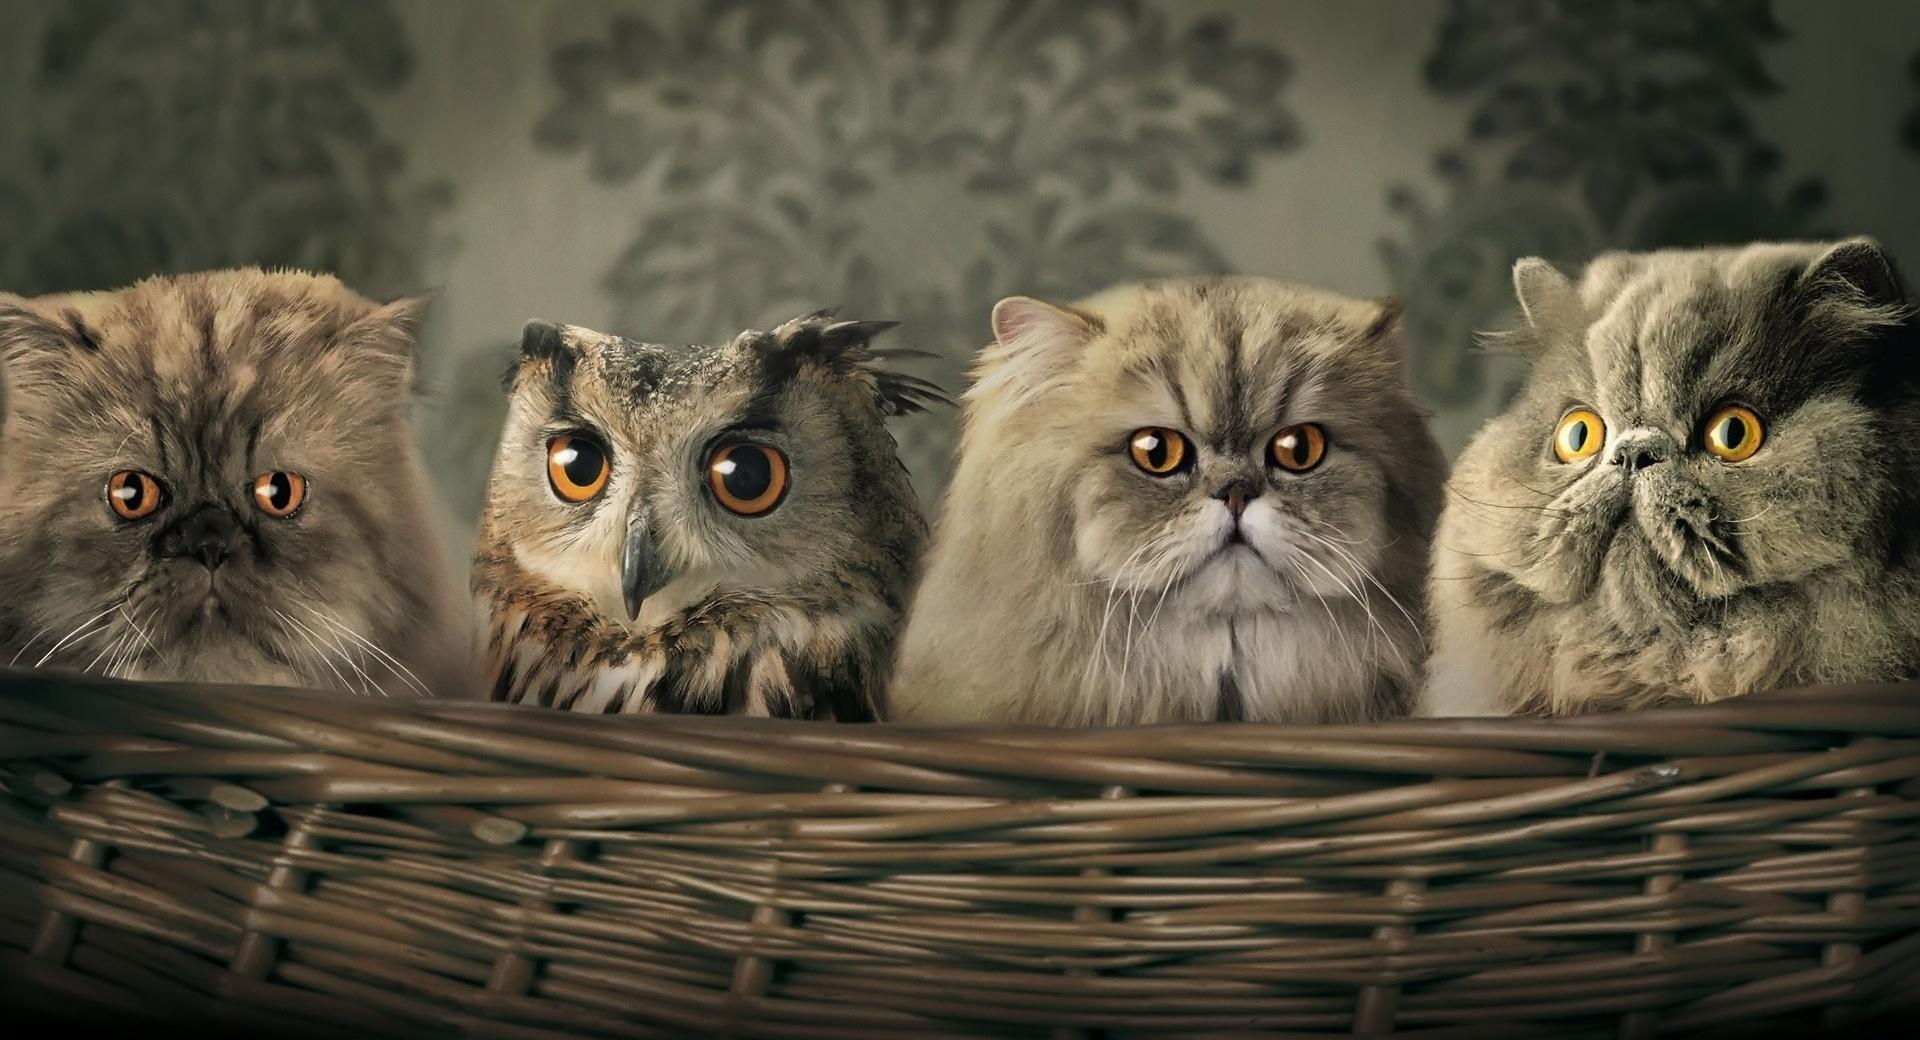 Cats And Owl wallpapers HD quality